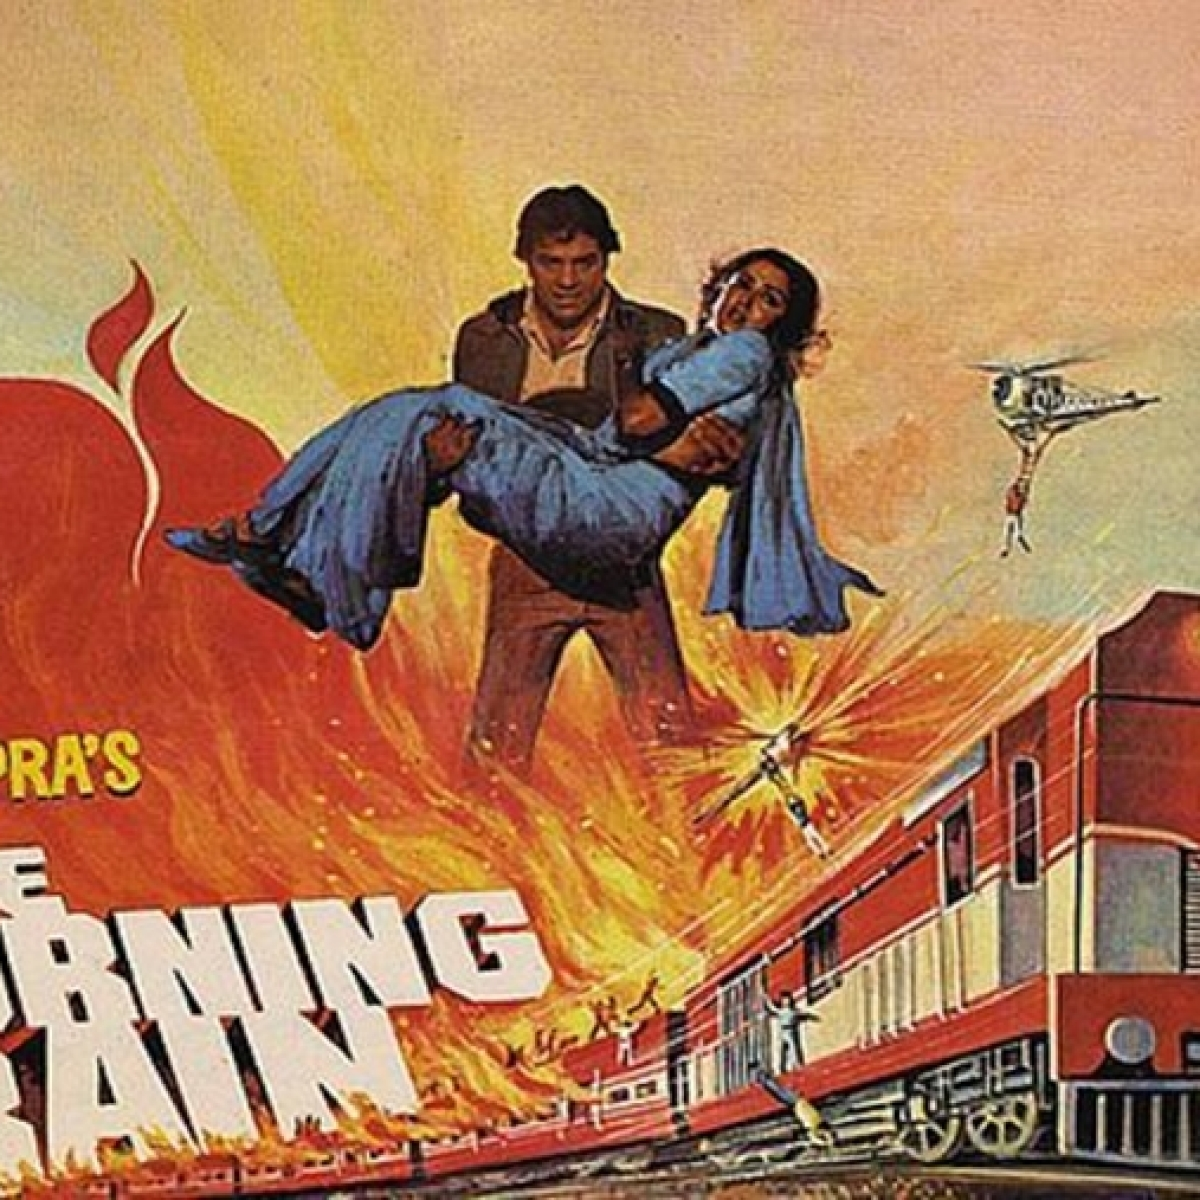 1980 disaster-thriller 'The Burning Train' gets a remake with star-studded cast